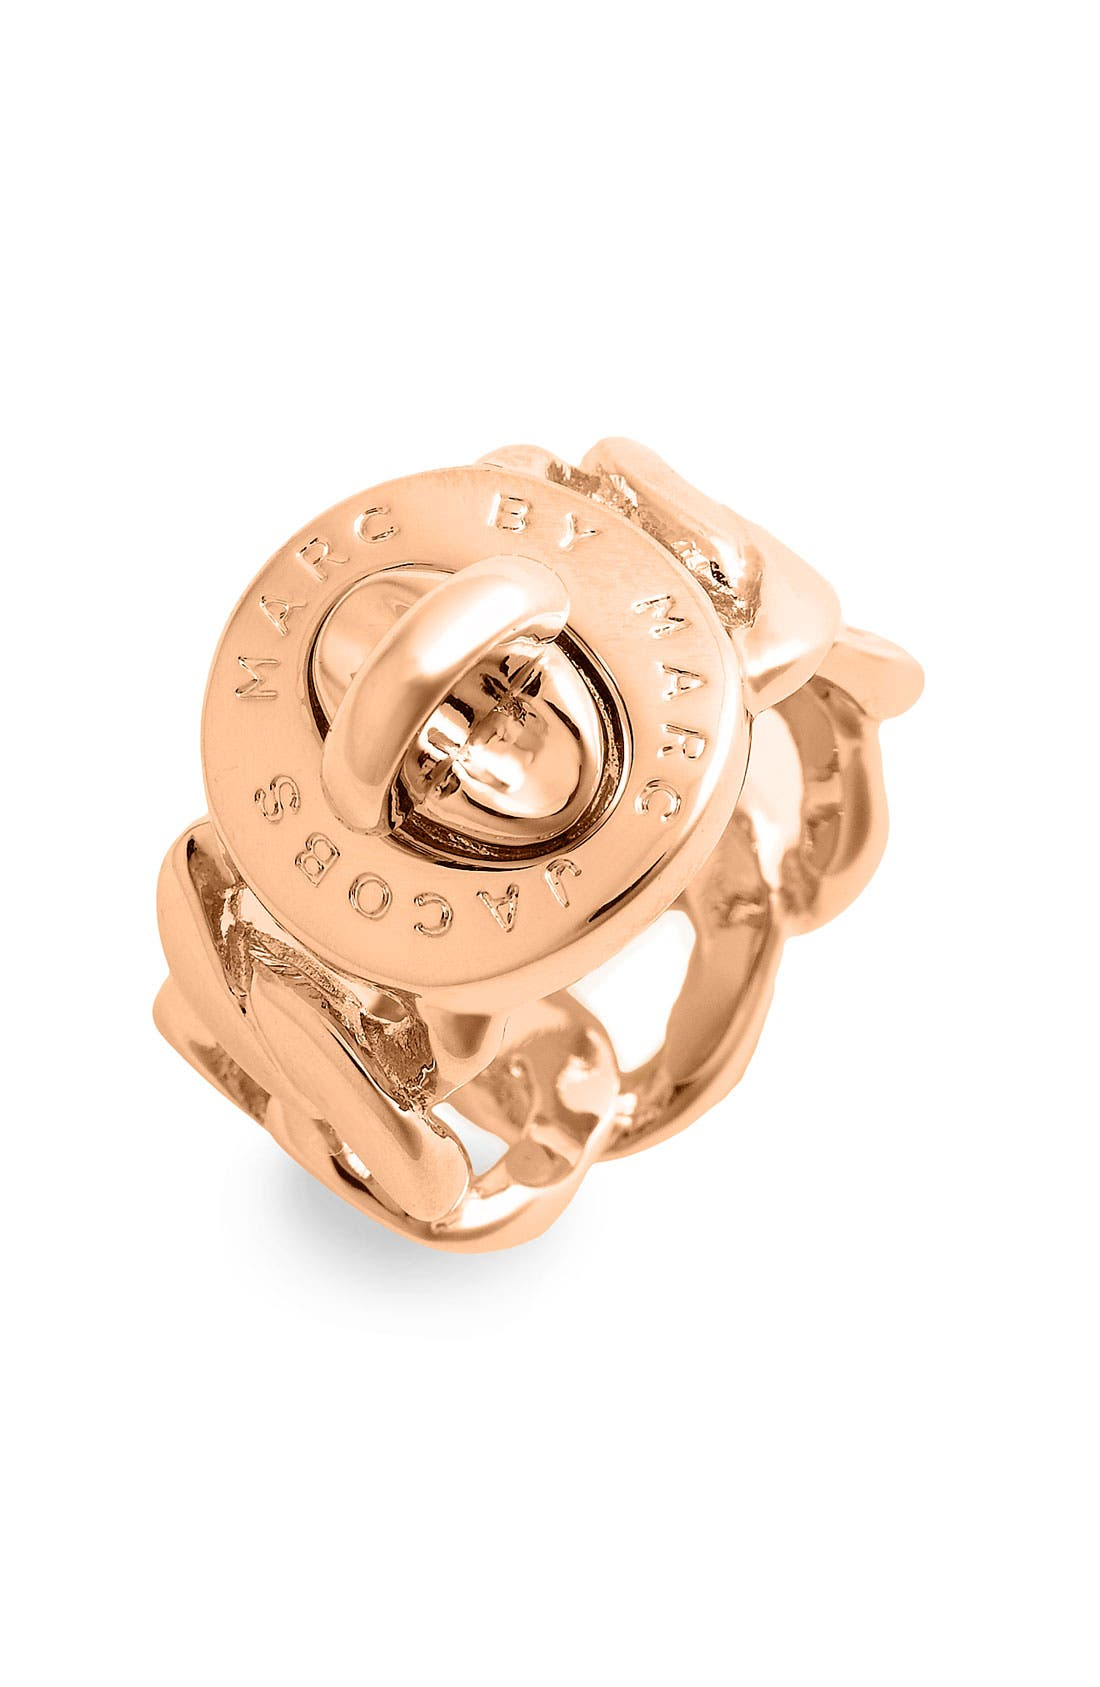 Main Image - MARC BY MARC JACOBS 'Turnlock - Katie' Ring